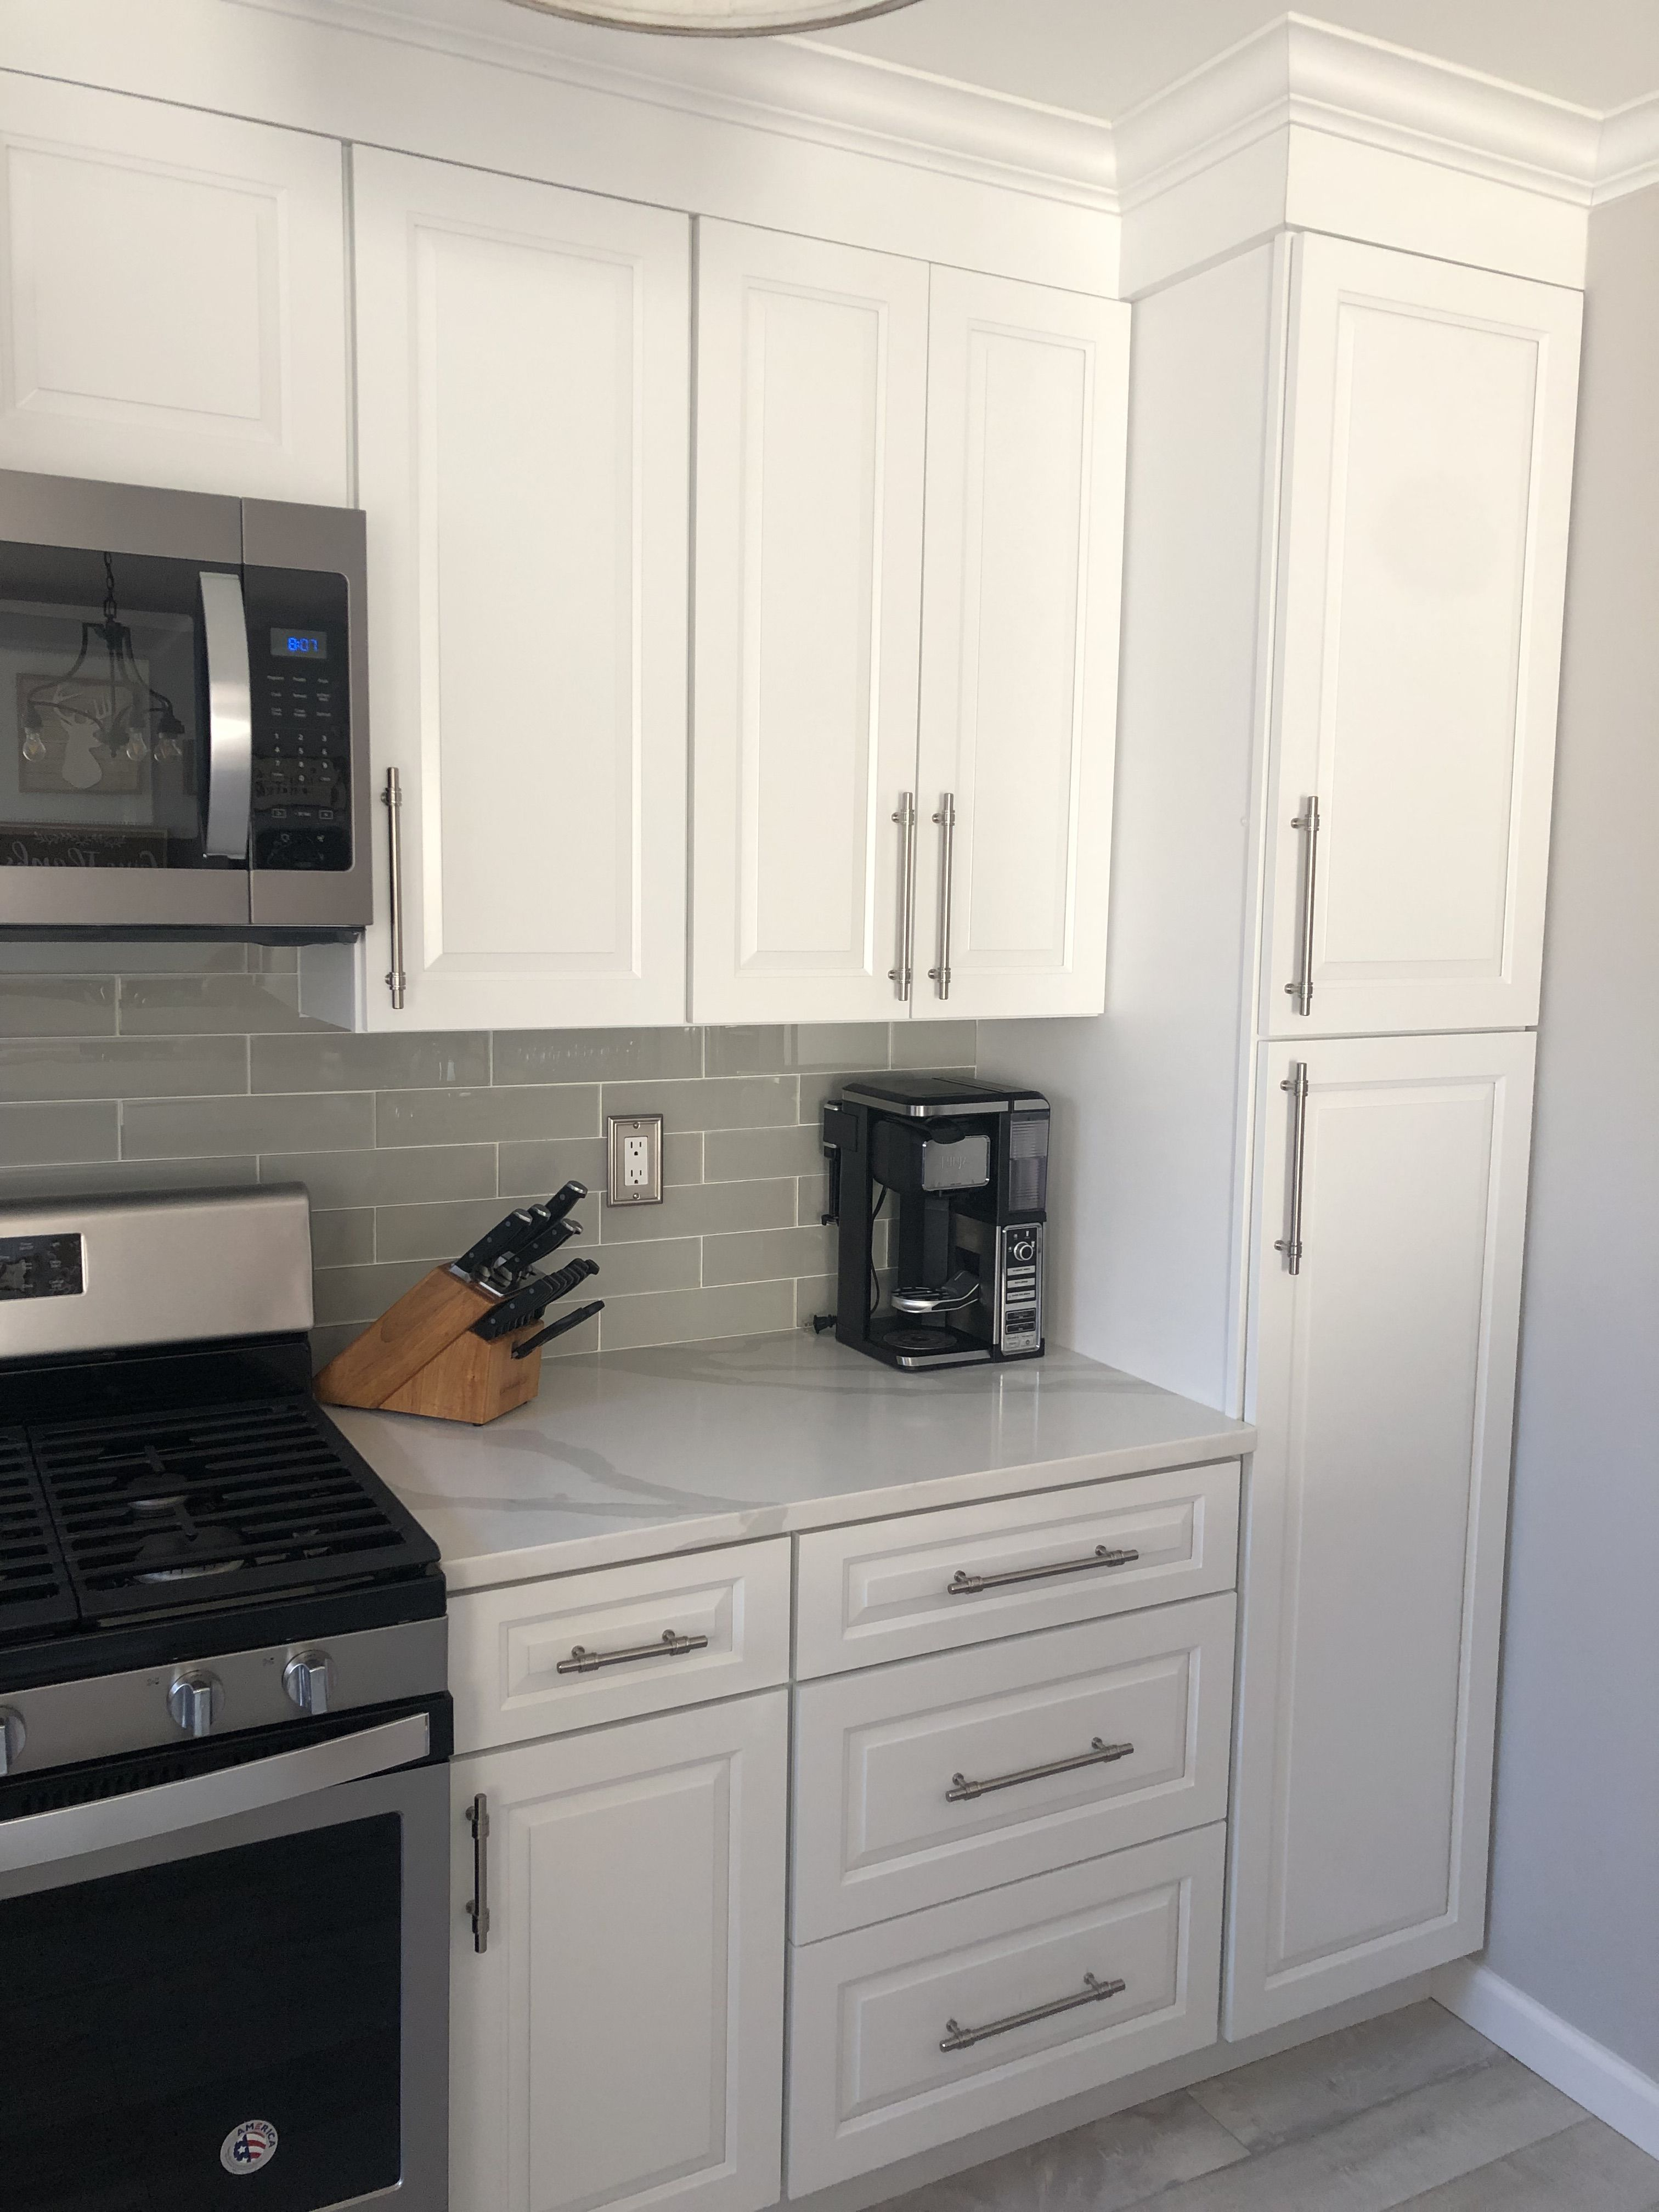 White Plains Ny Kitchen Renovation Kitchen Renovation Kitchen Cabinets Update Kitchen Cabinets